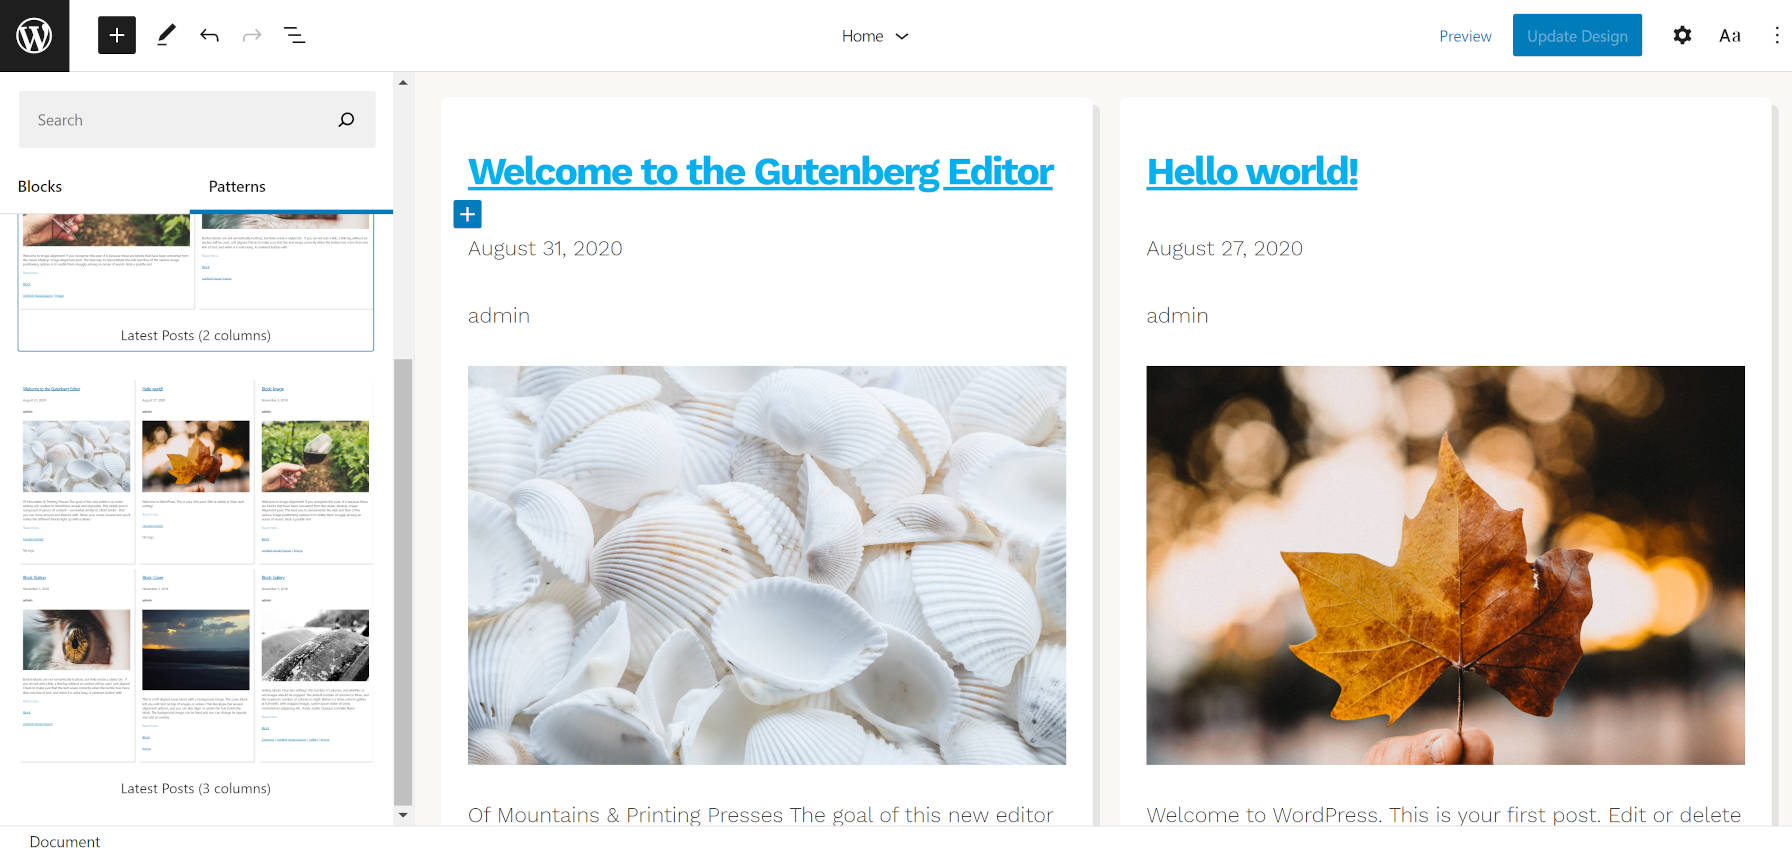 Blog posts patterns included in the Hansen WordPress theme.